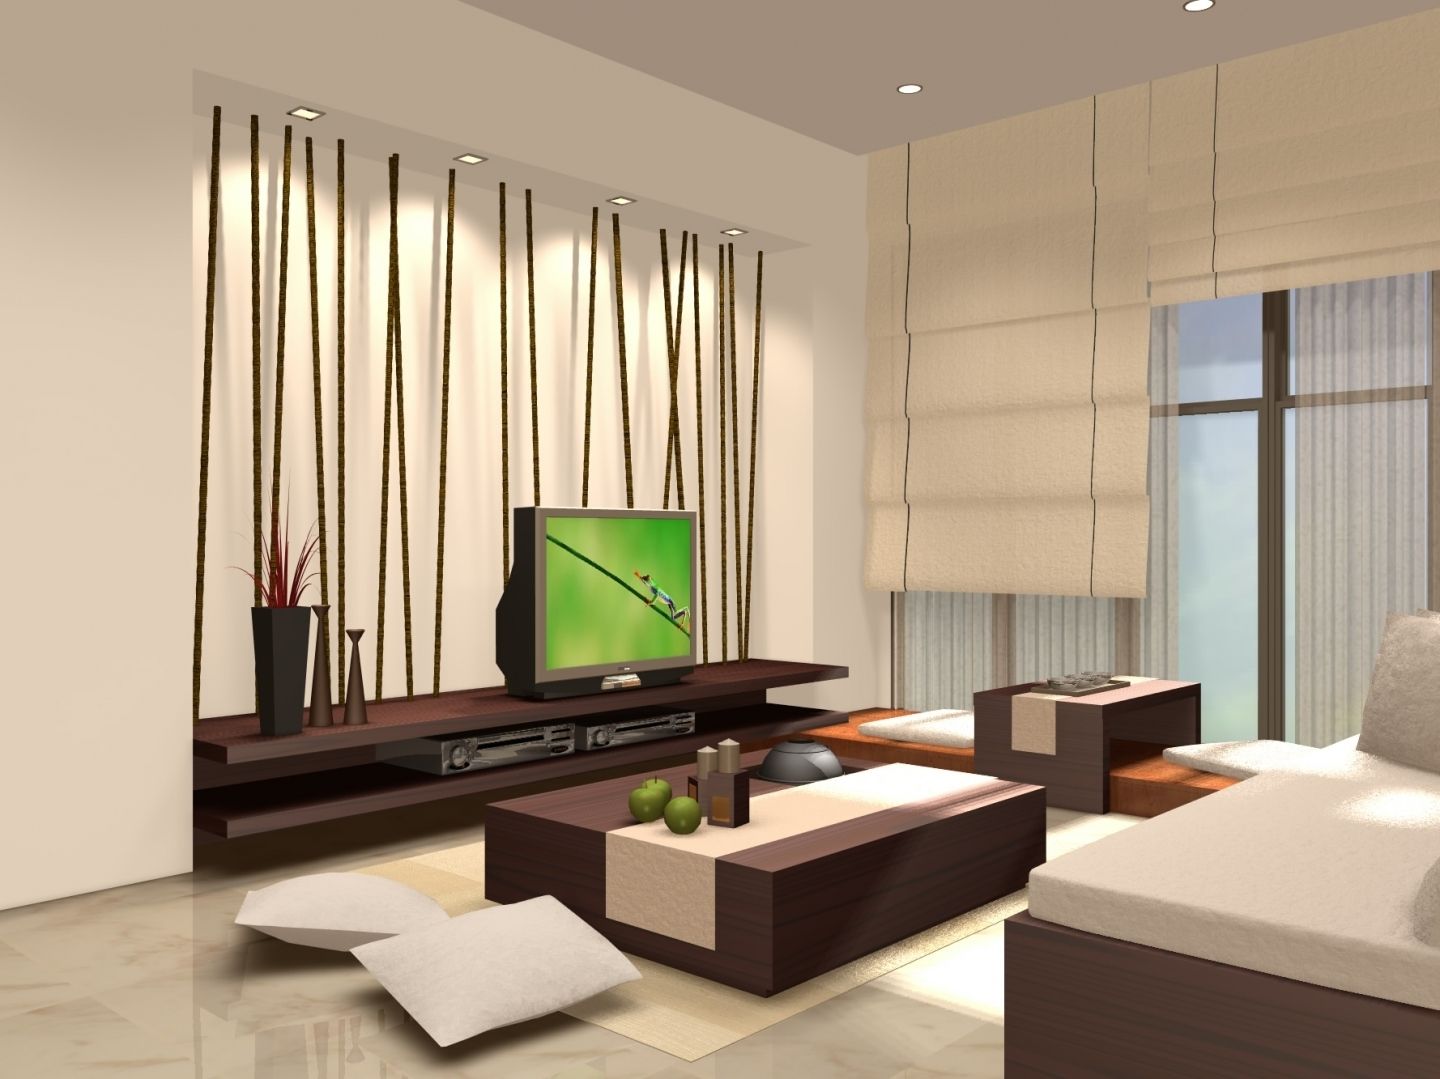 Featured Image of Japanese Modern Living Room Deisng Concept